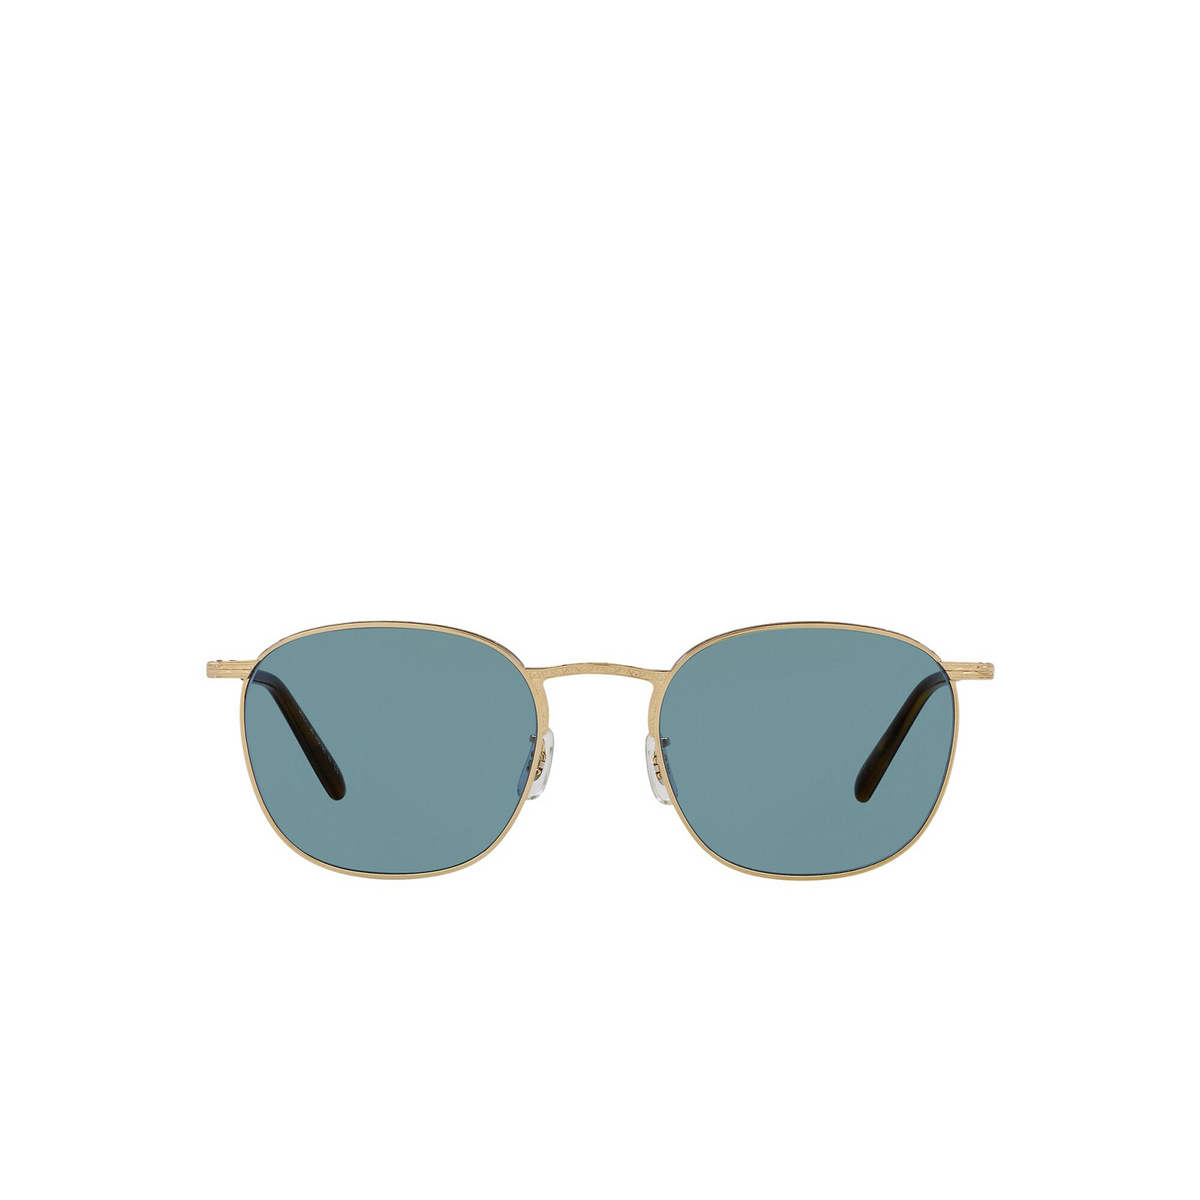 Oliver Peoples® Square Sunglasses: Goldsen Sun OV1285ST color Gold 529256 - front view.